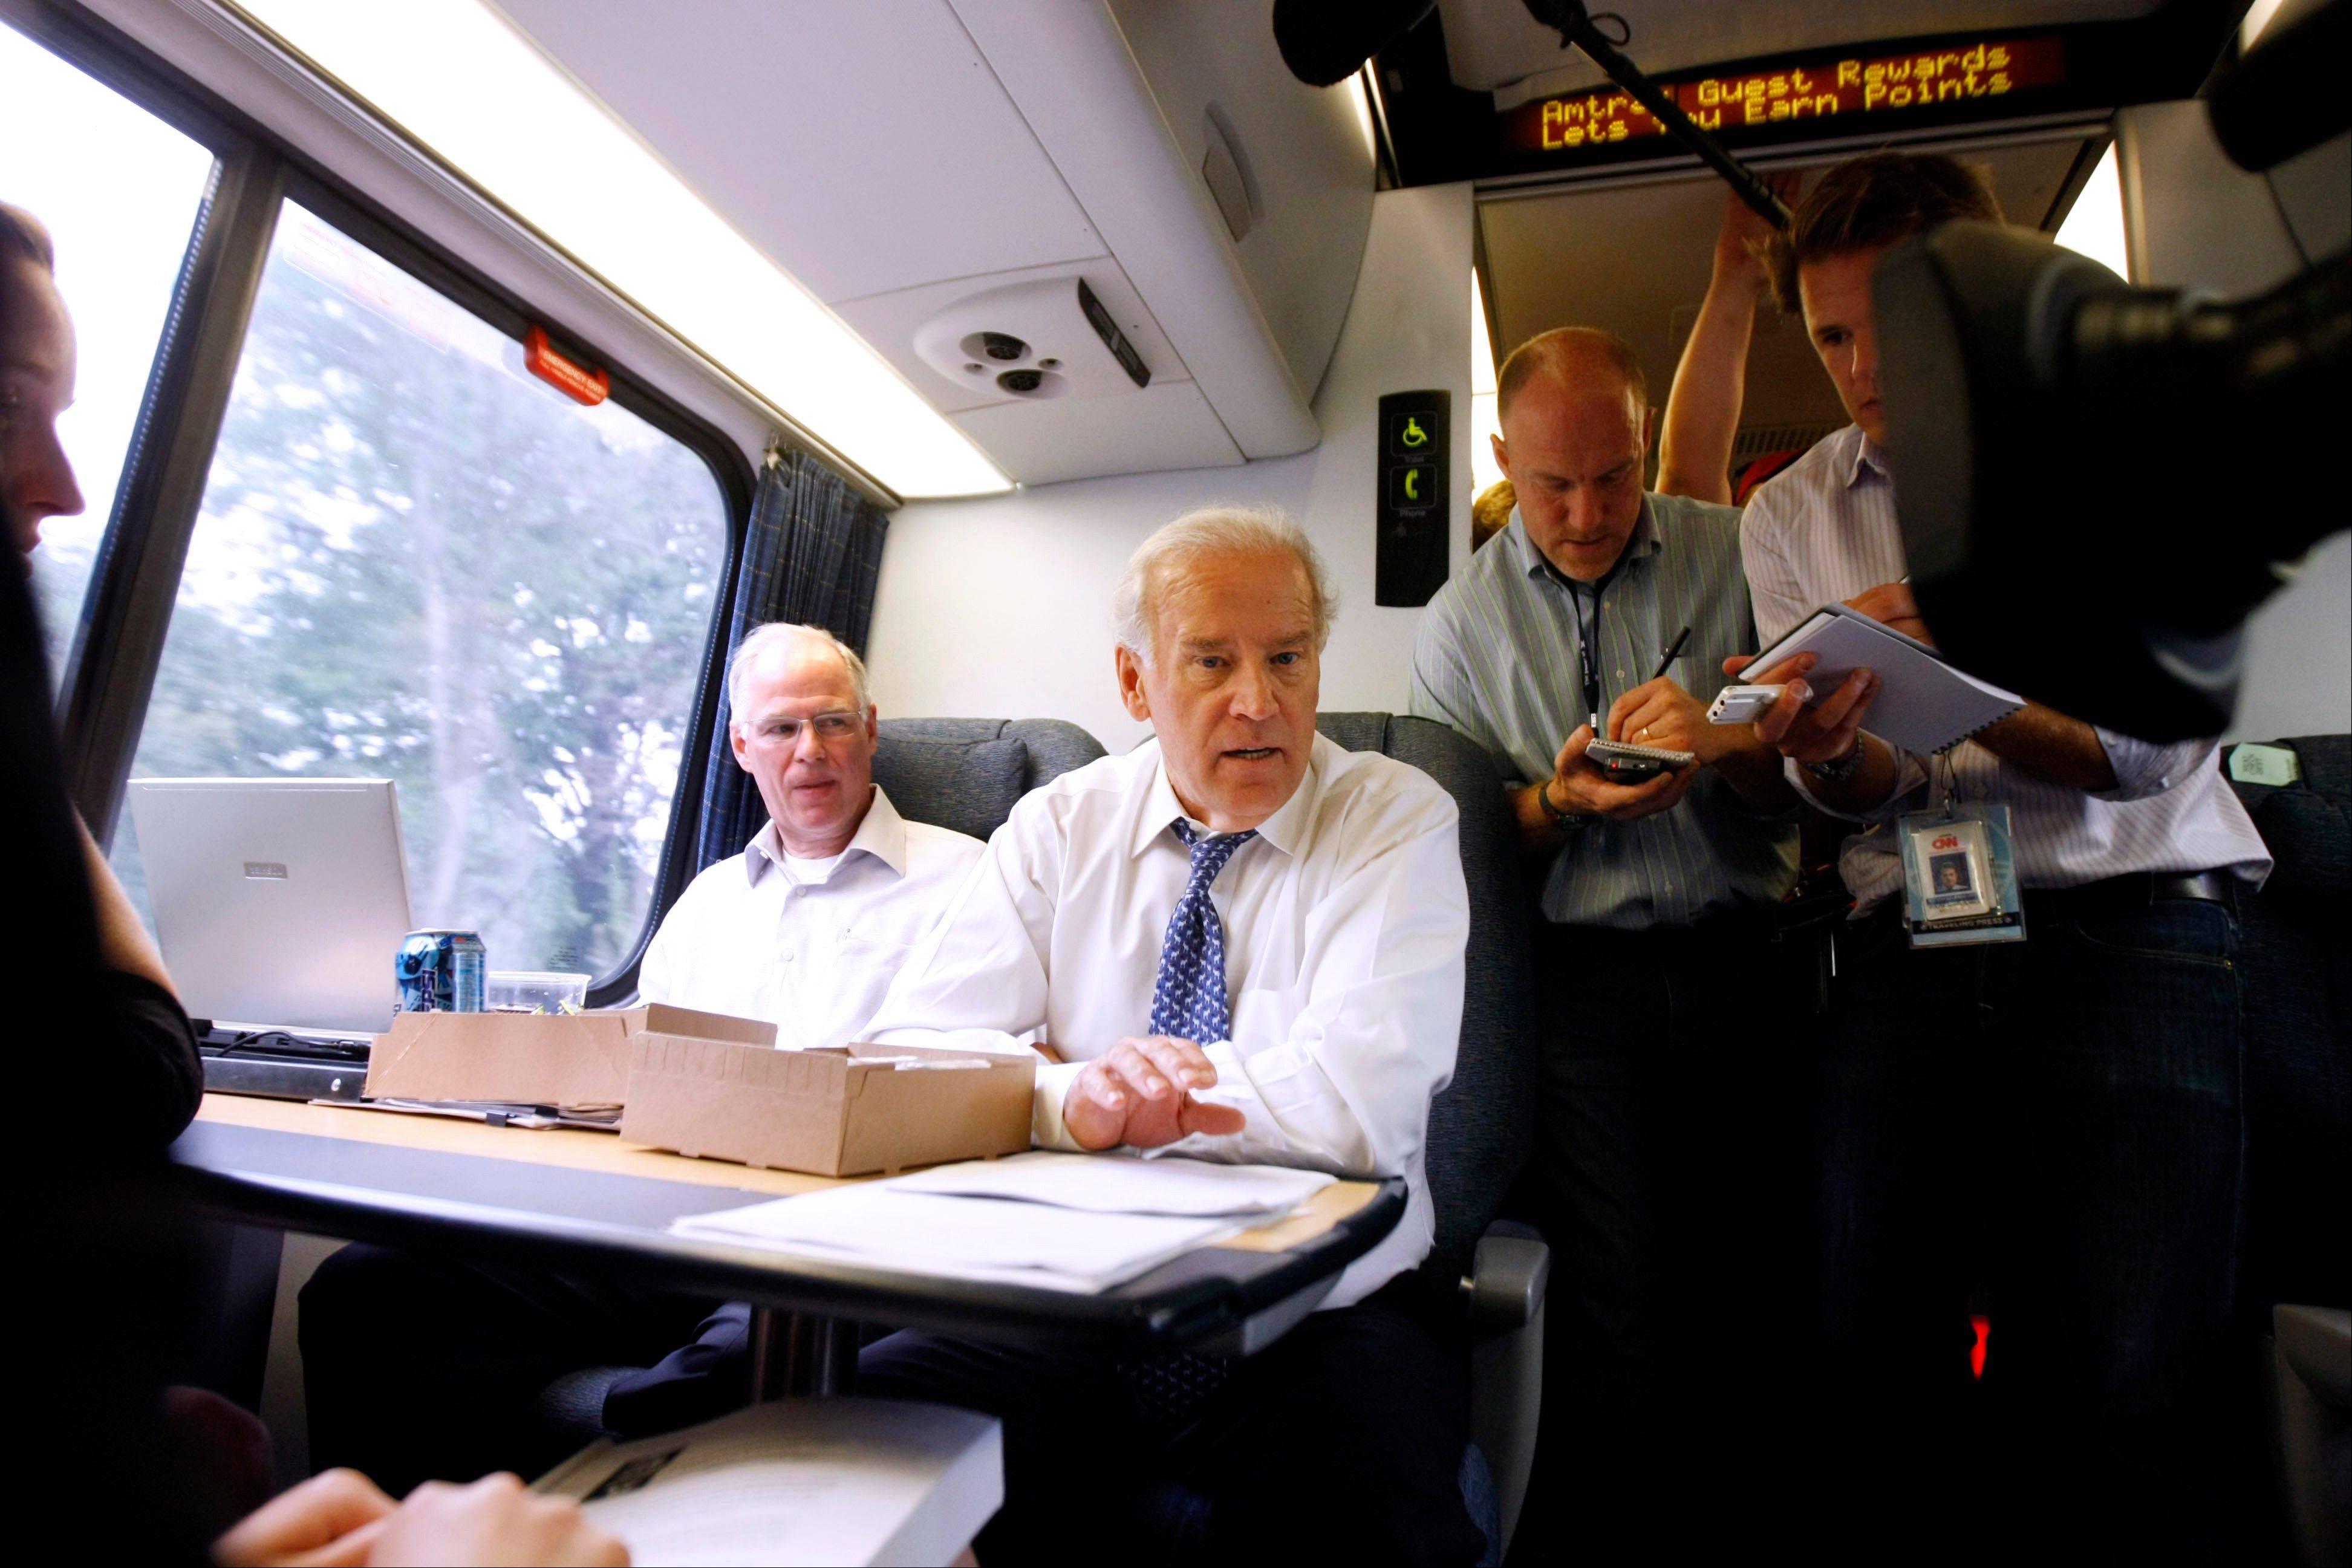 In this 2008 file photo, then-Democratic vice presidential candidate Sen. Joe Biden mingles with passengers aboard the Amtrak Acela train from Washington to Wilmington, Del. The platform Republicans adopted at their convention last week includes a call for full privatization and an end to subsidies for the nation's passenger rail operator.